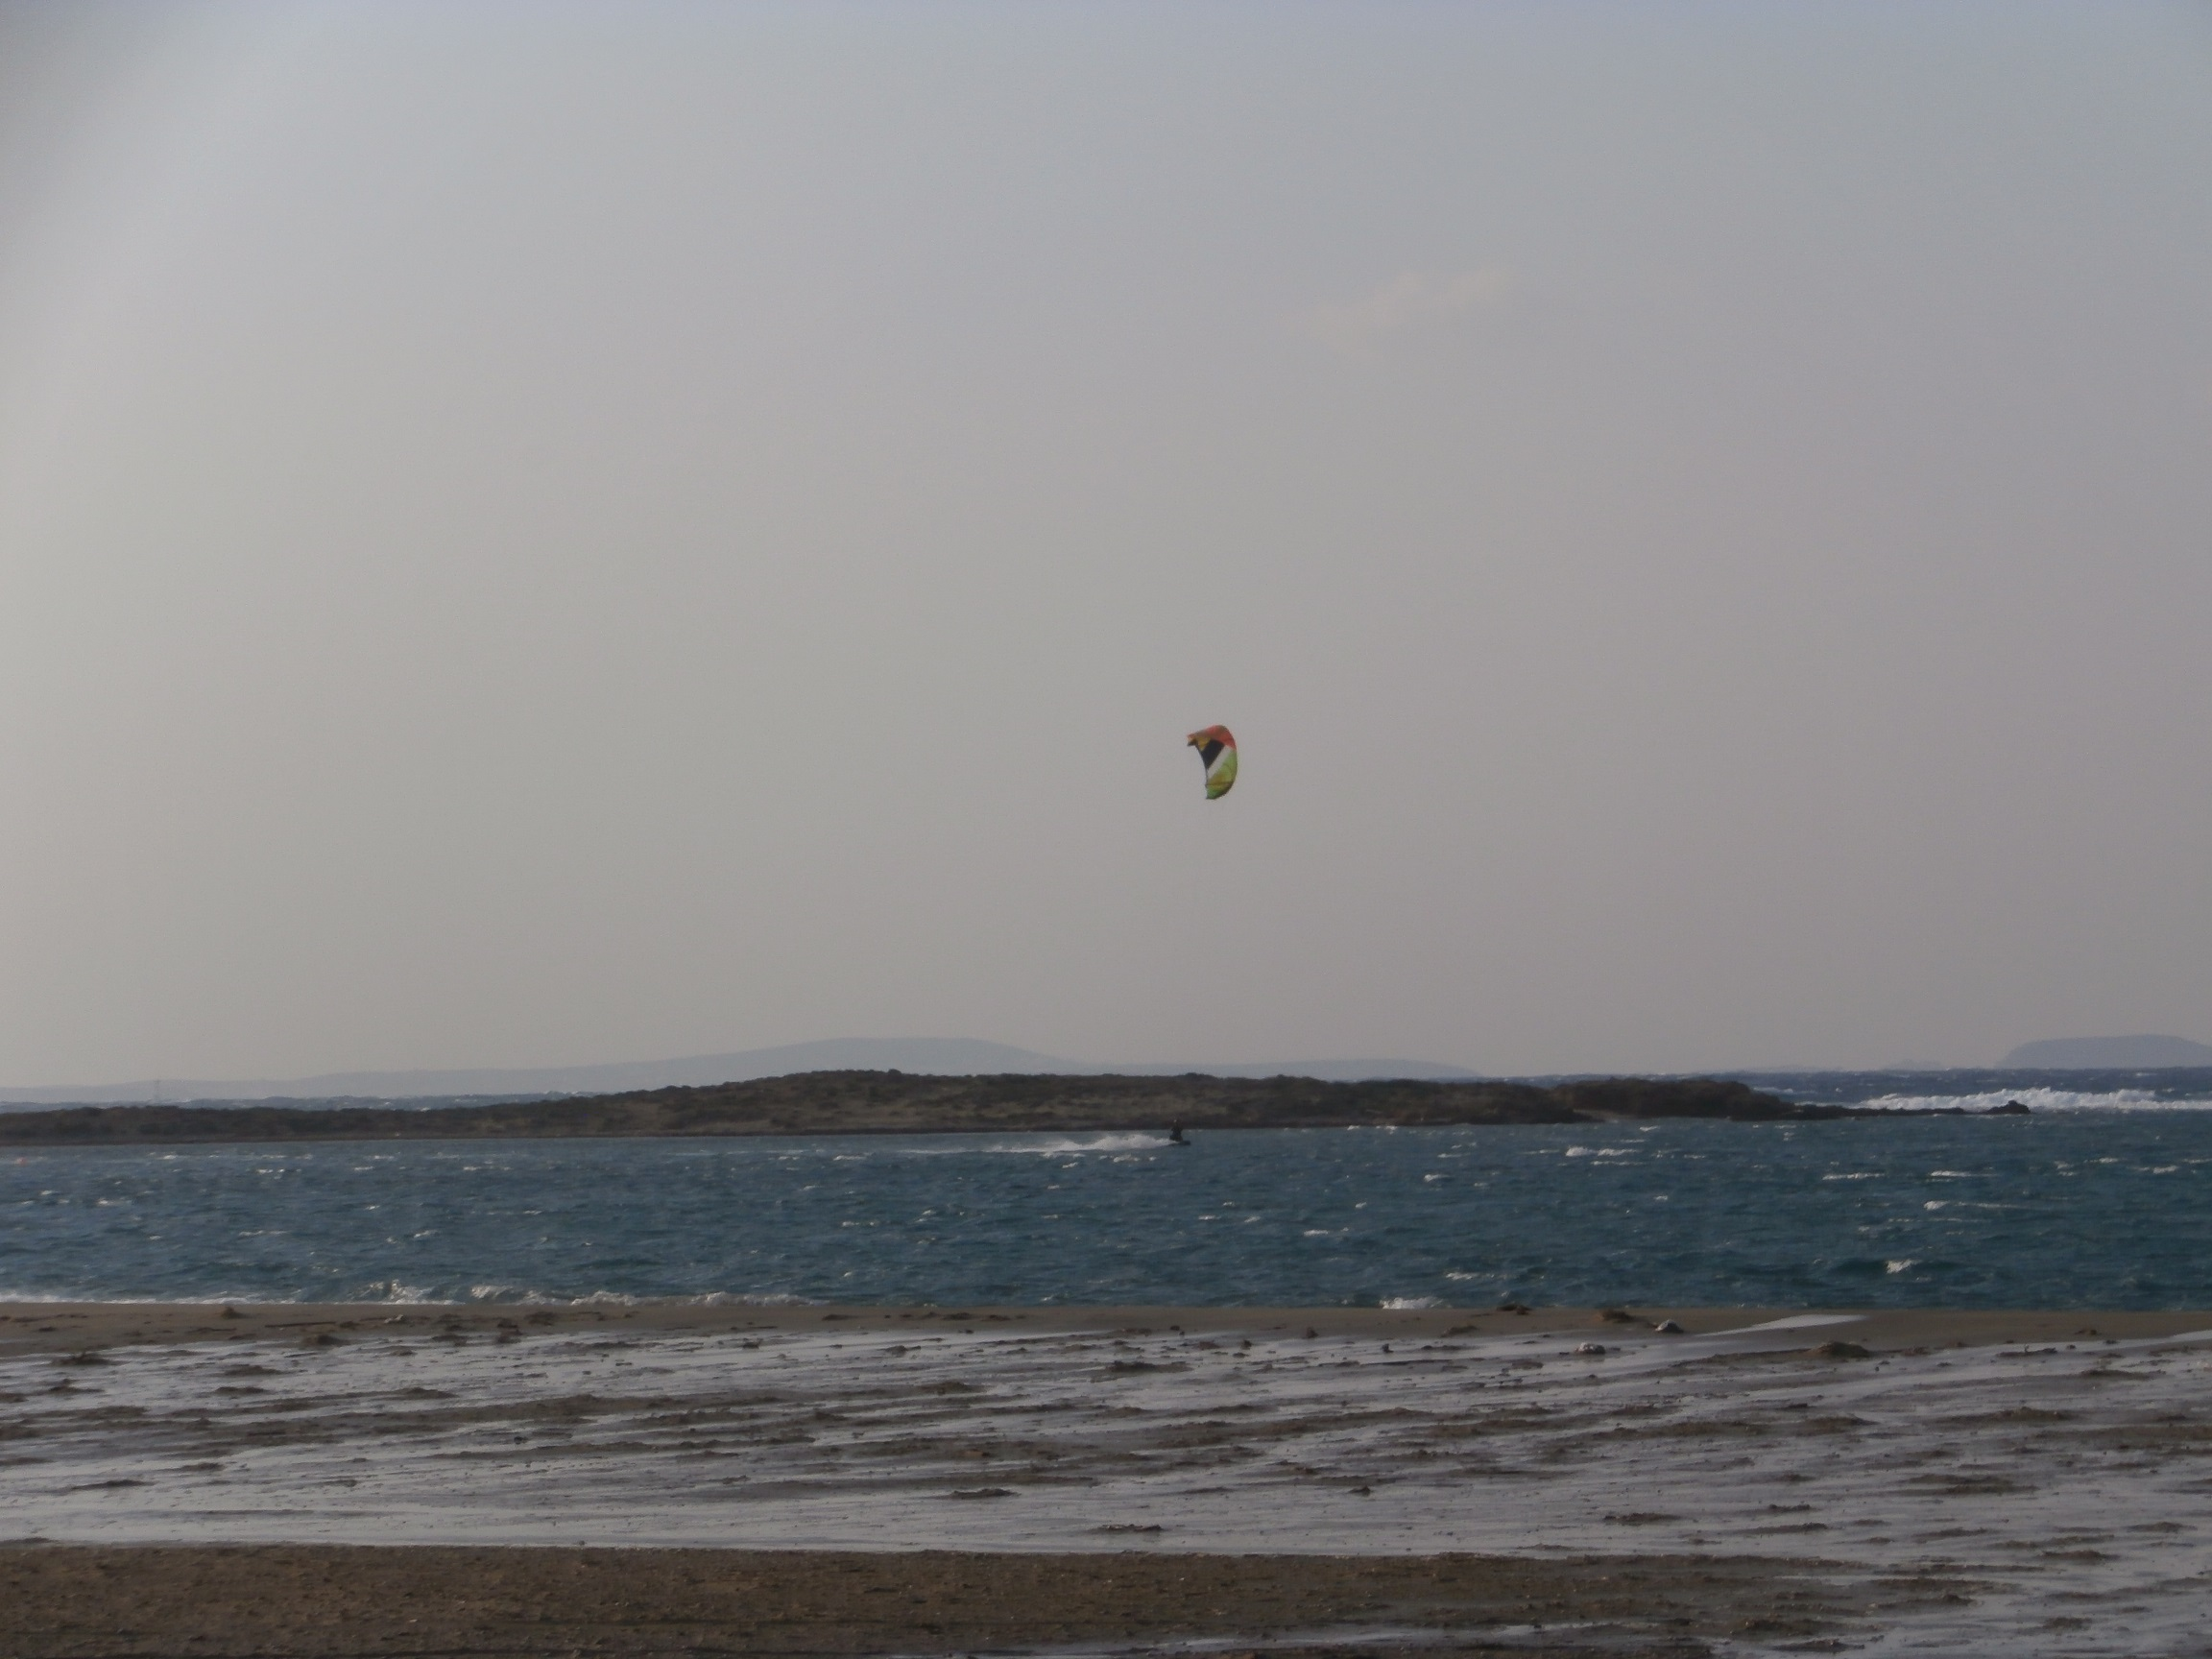 Naxos watersports